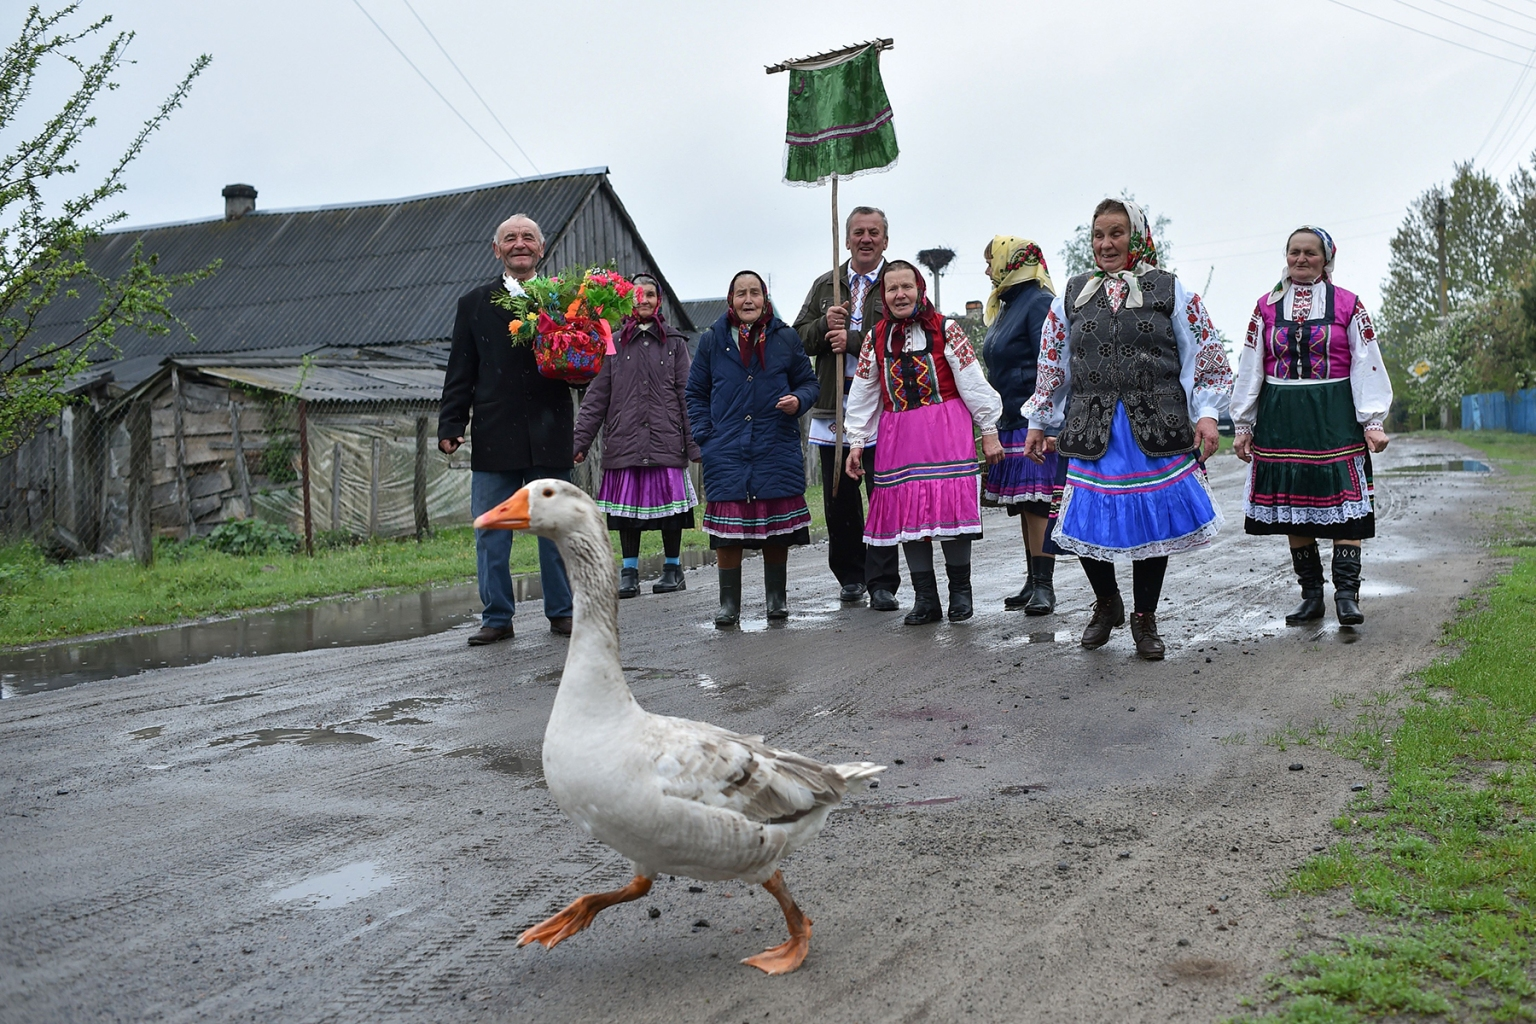 A goose walks on the road as Belarusian villagers take part in the Yurya religious rite to bring a good harvest in the village of Lutki, south of Minsk, on May 6. SERGEI GAPON/AFP/Getty Images